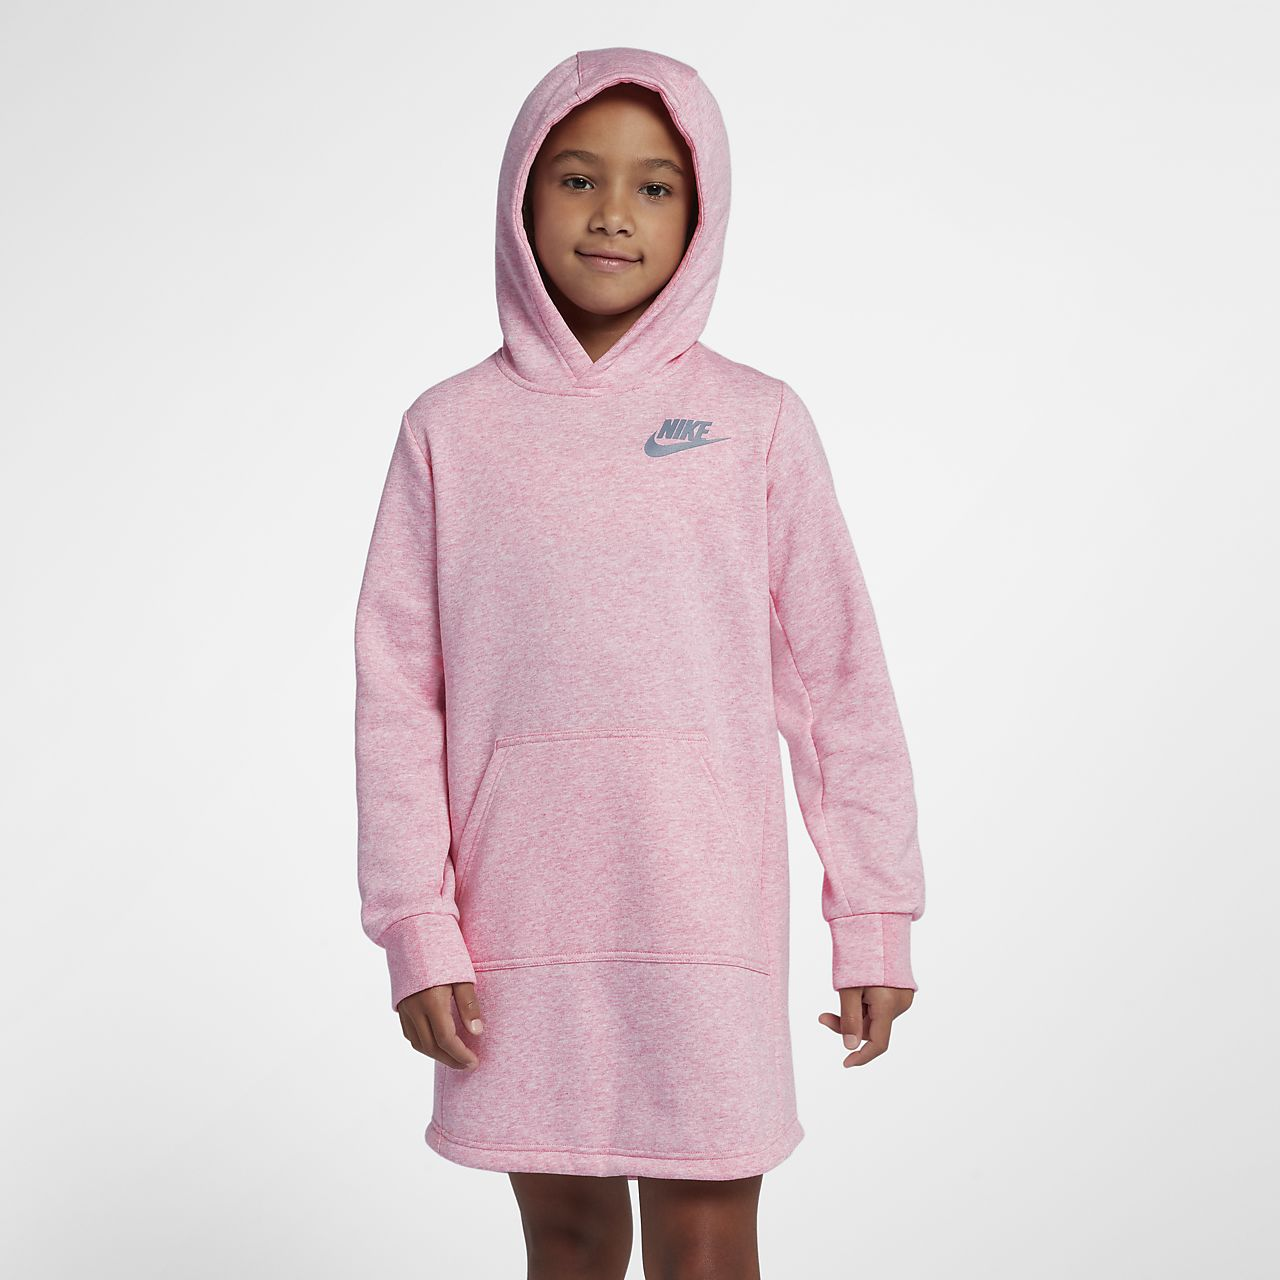 3a71517ba Nike Sportswear Big Kids' (Girls') Long-Sleeve Dress. Nike.com